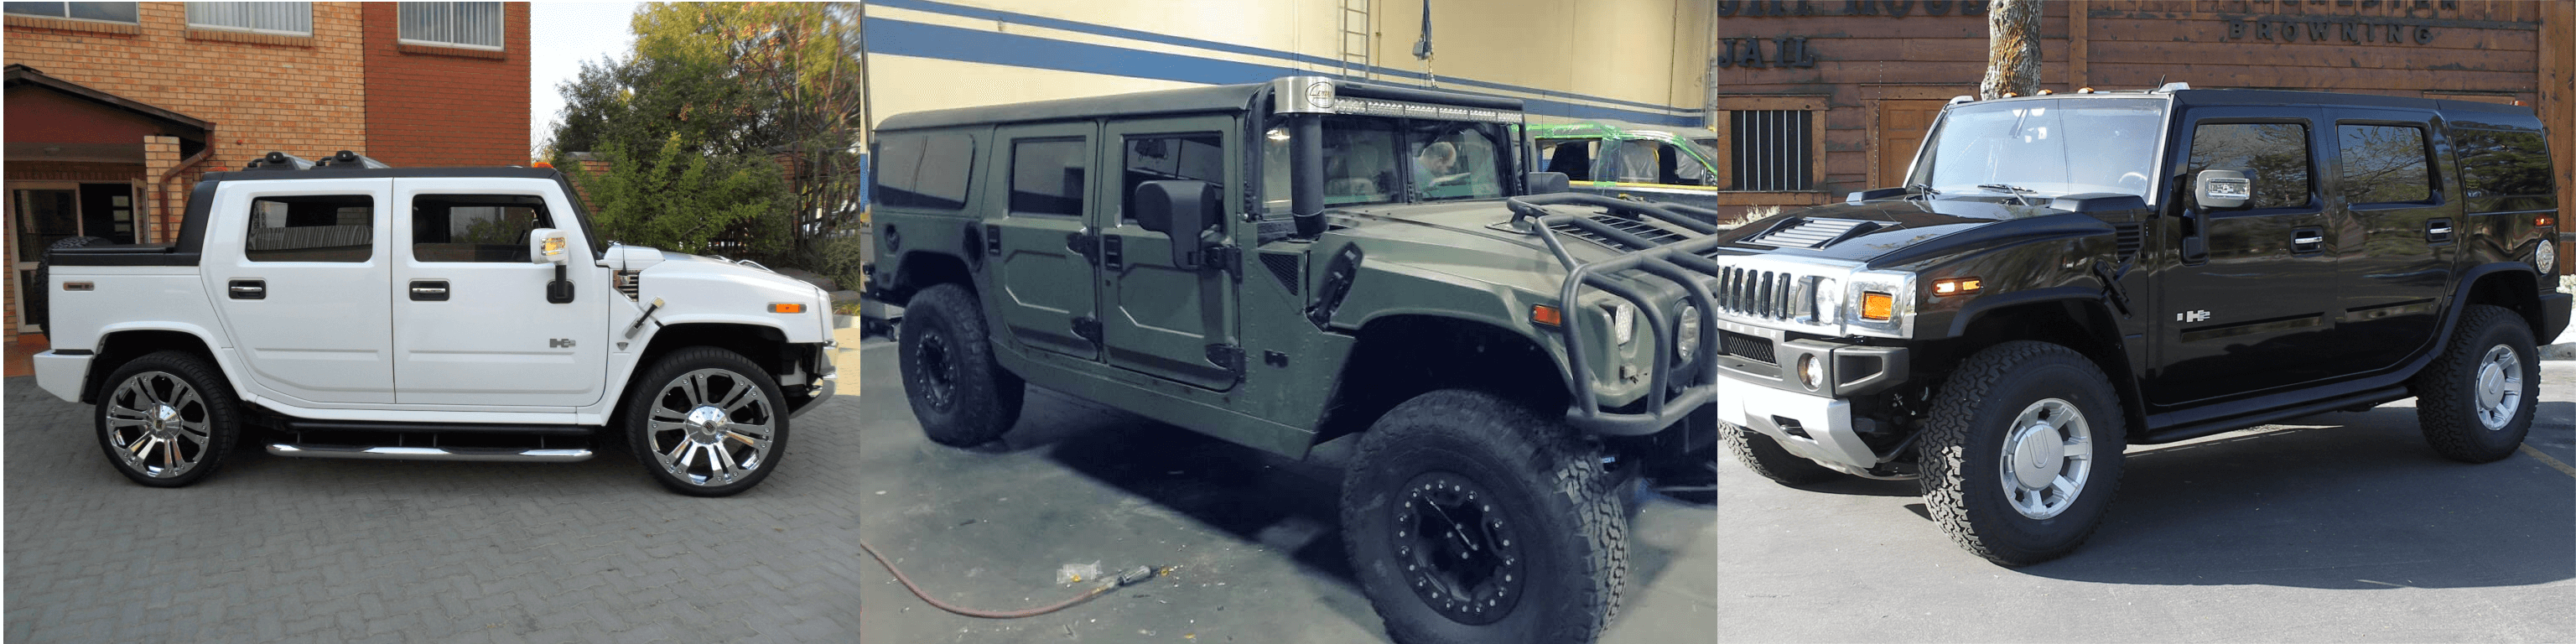 Armored Hummers